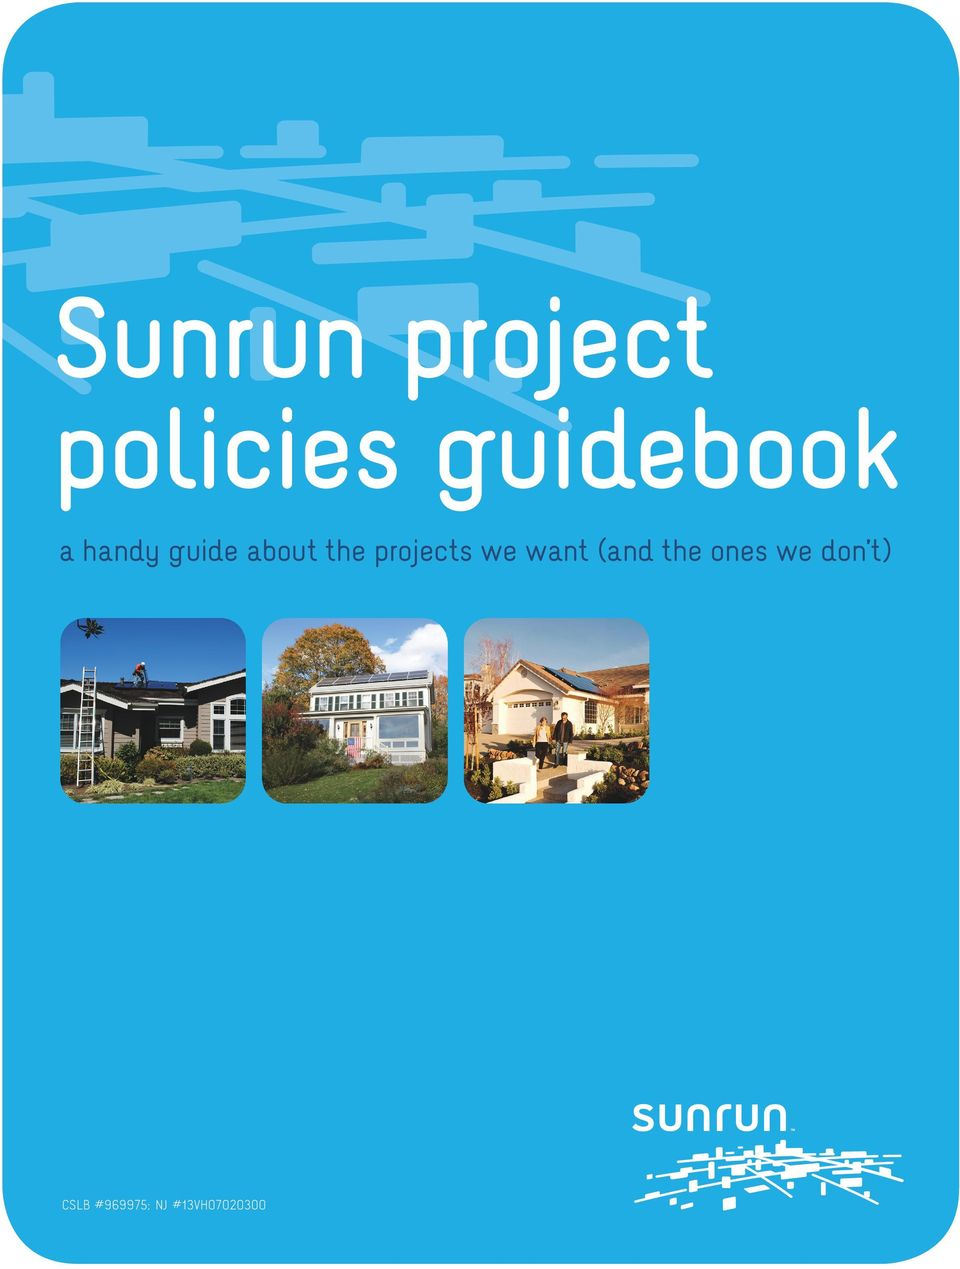 Sunrun project policies guidebook - PDF